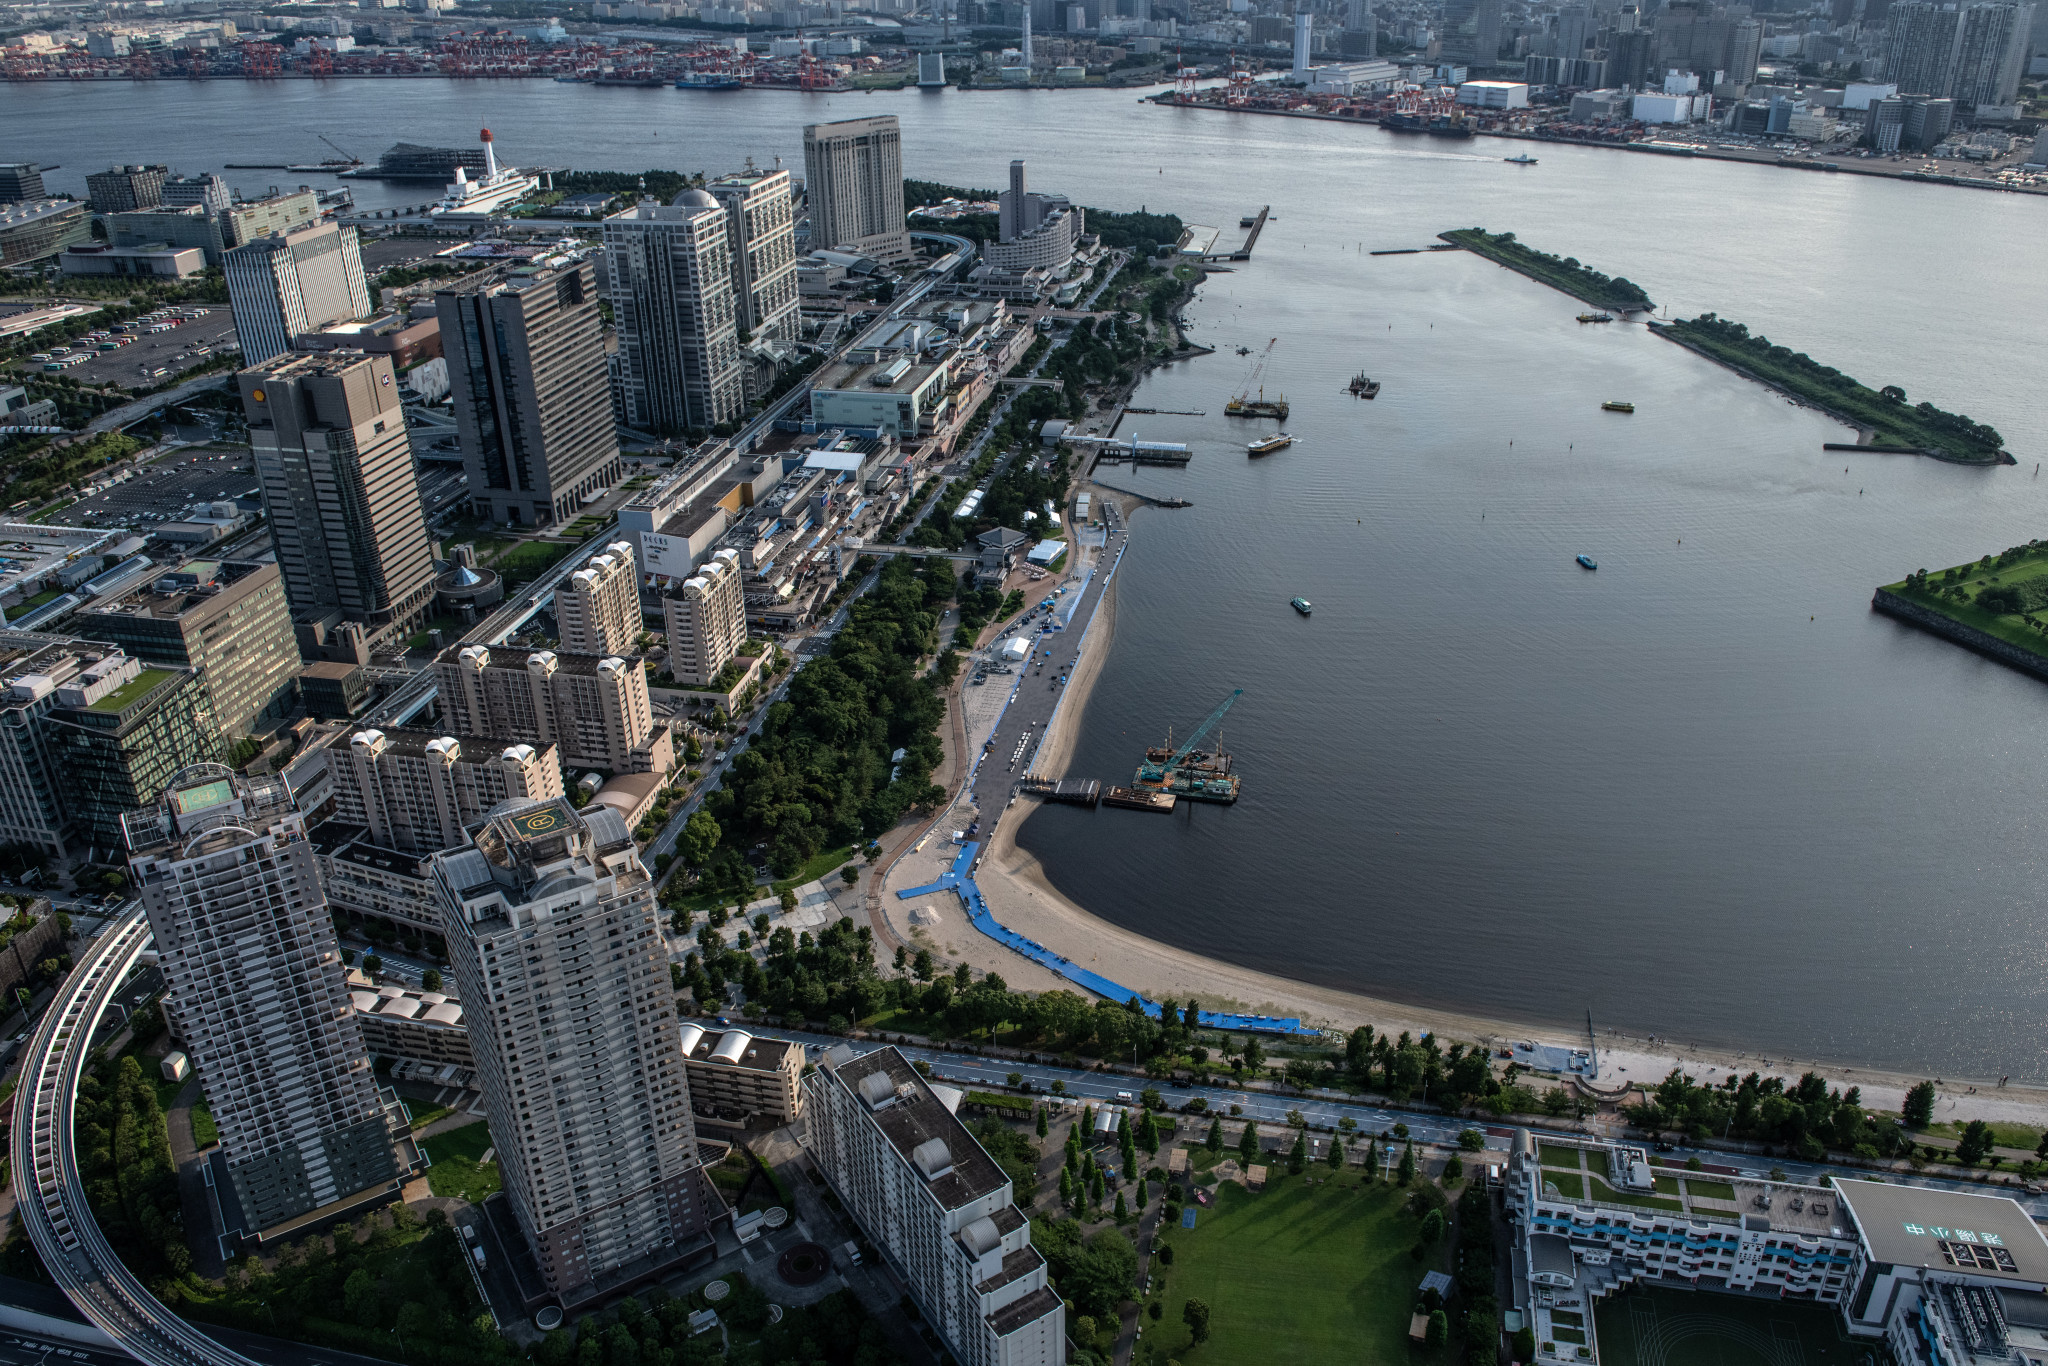 Water quality main concern as Tokyo 2020 prepare to host open water swimming test event